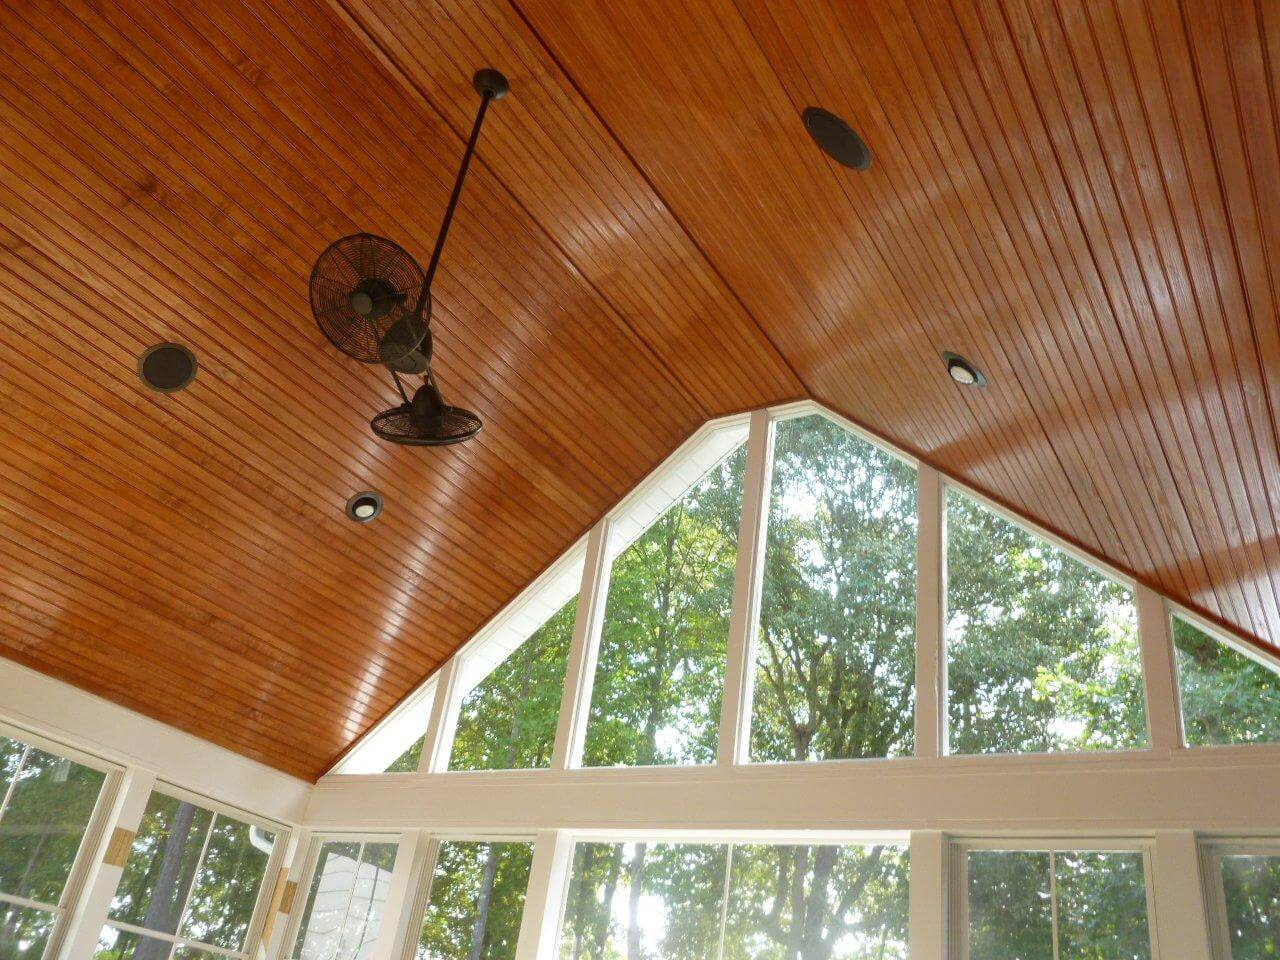 vaulted ceiling on a porch with a ceiling fan